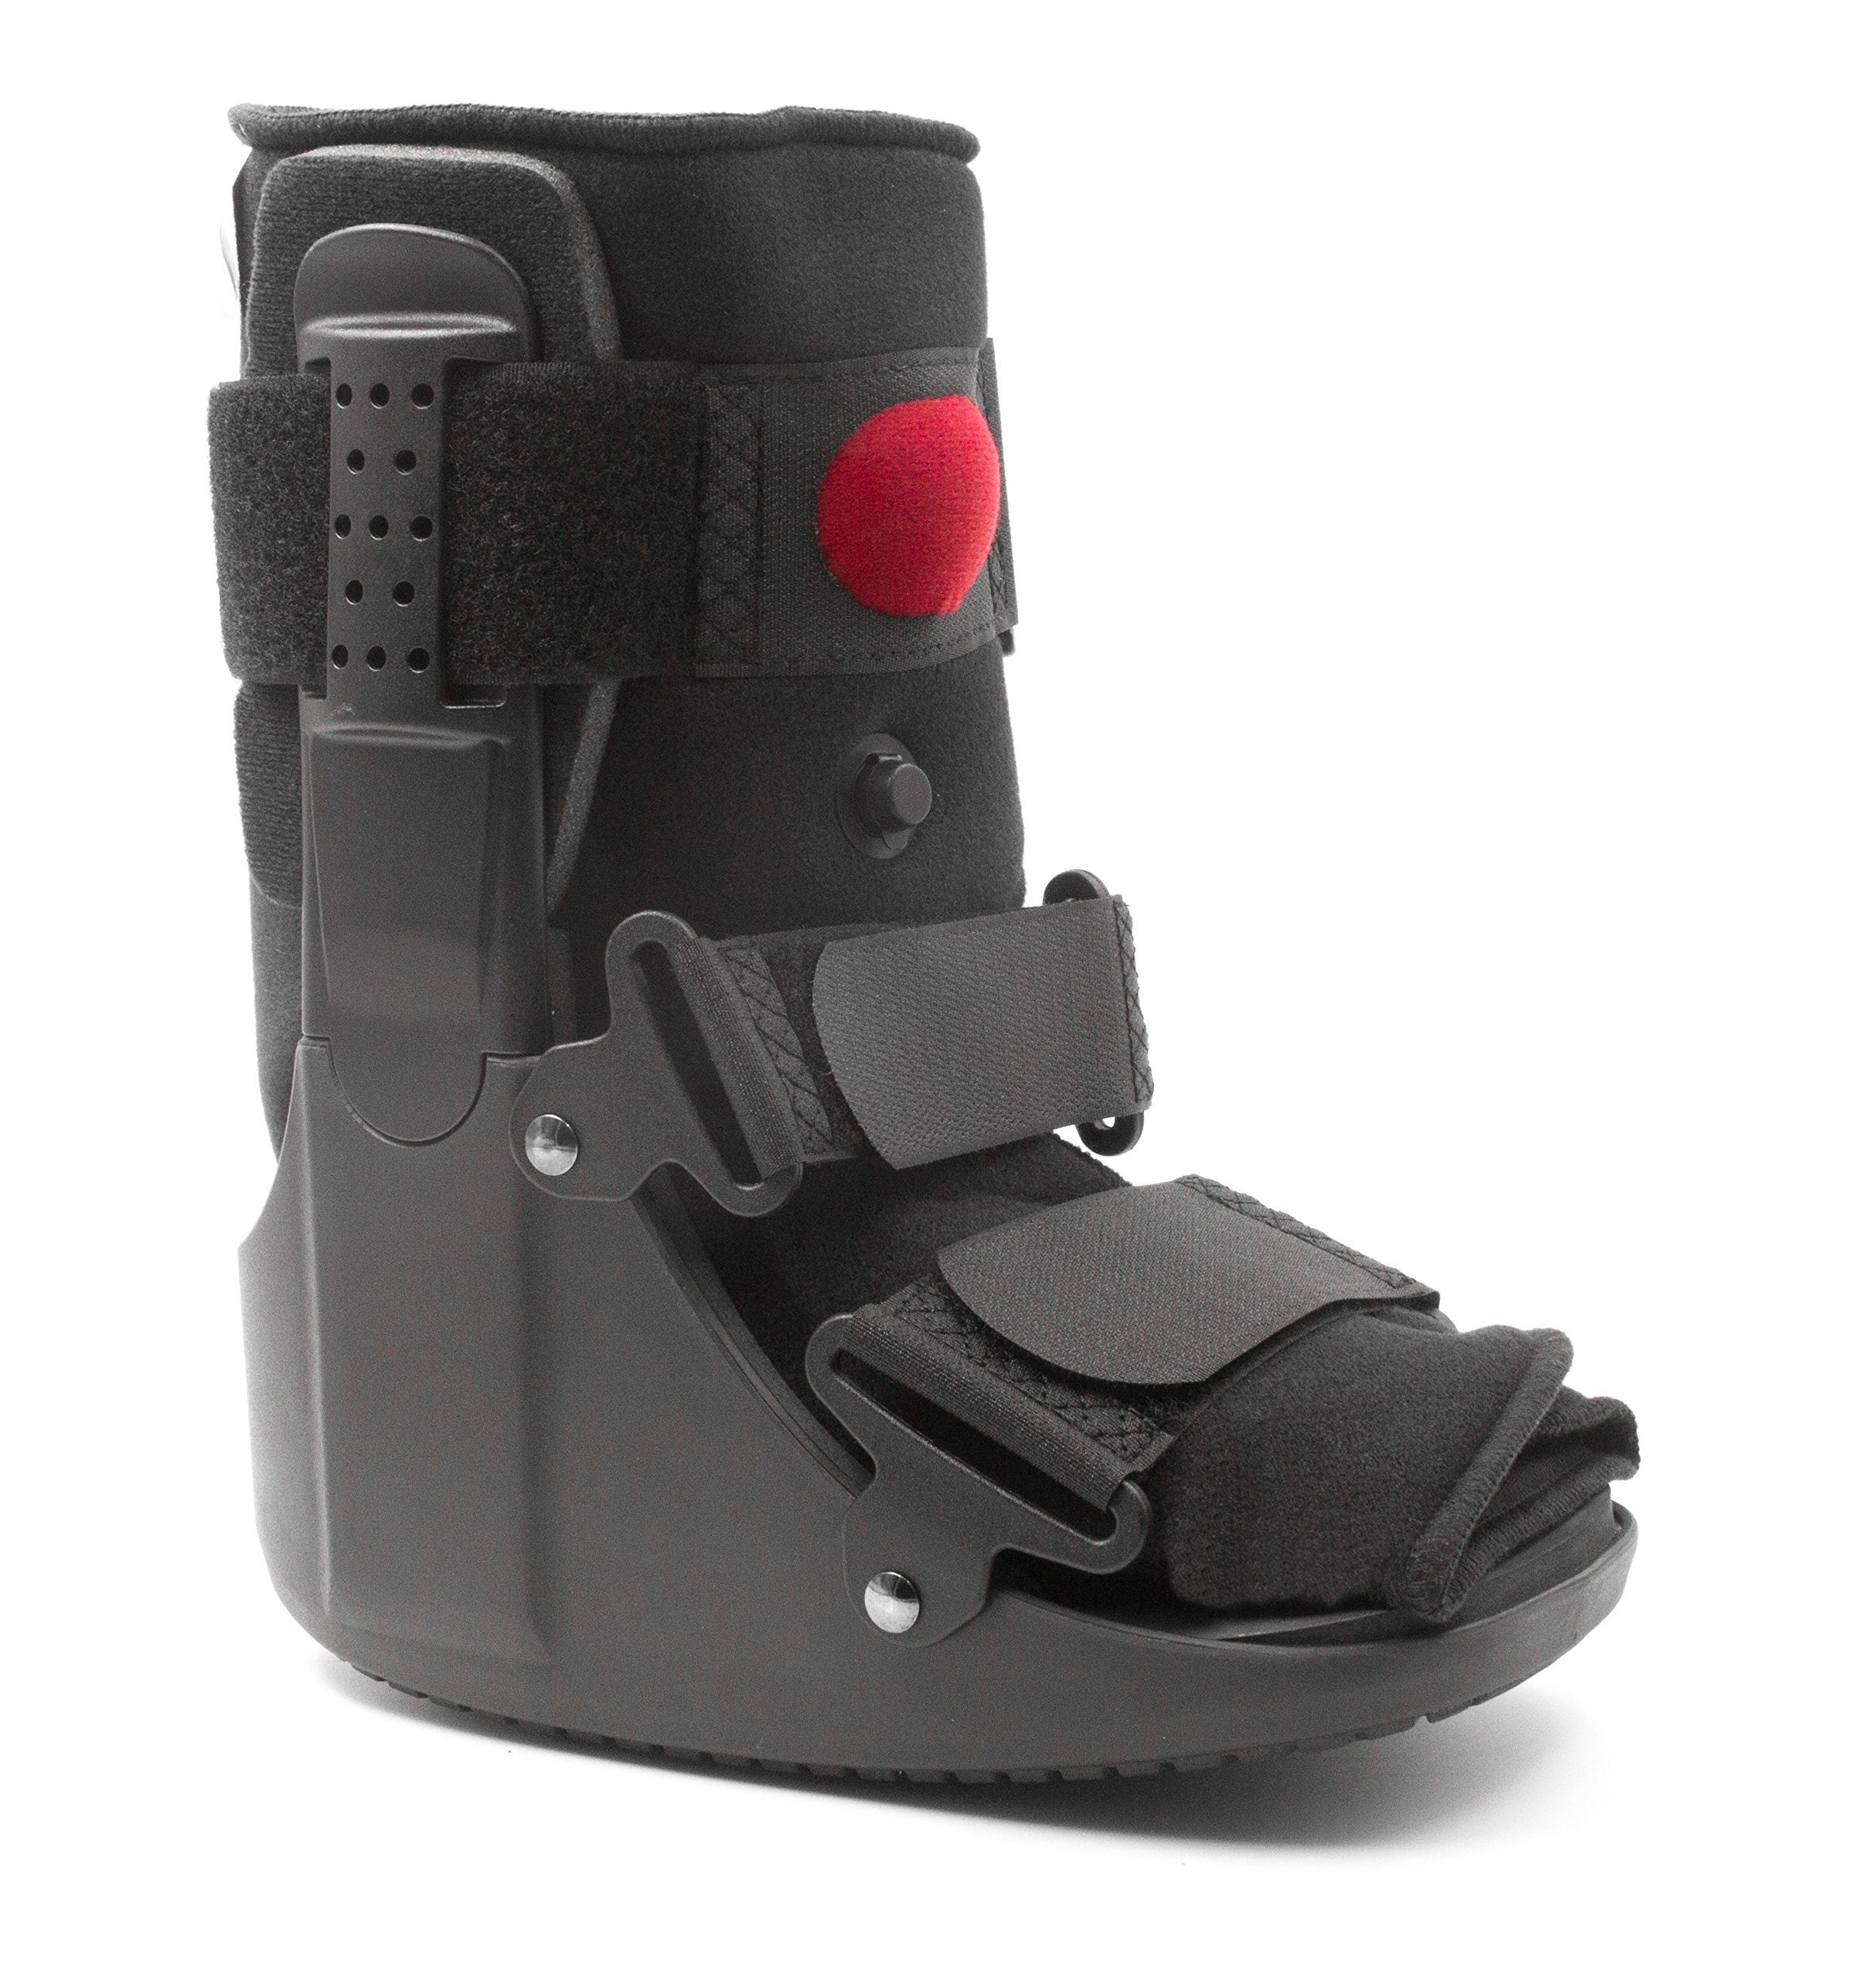 Premium Short Air Cam Walker Fracture Ankle/Foot Stabilizer Boot - Small - by MARS Wellness